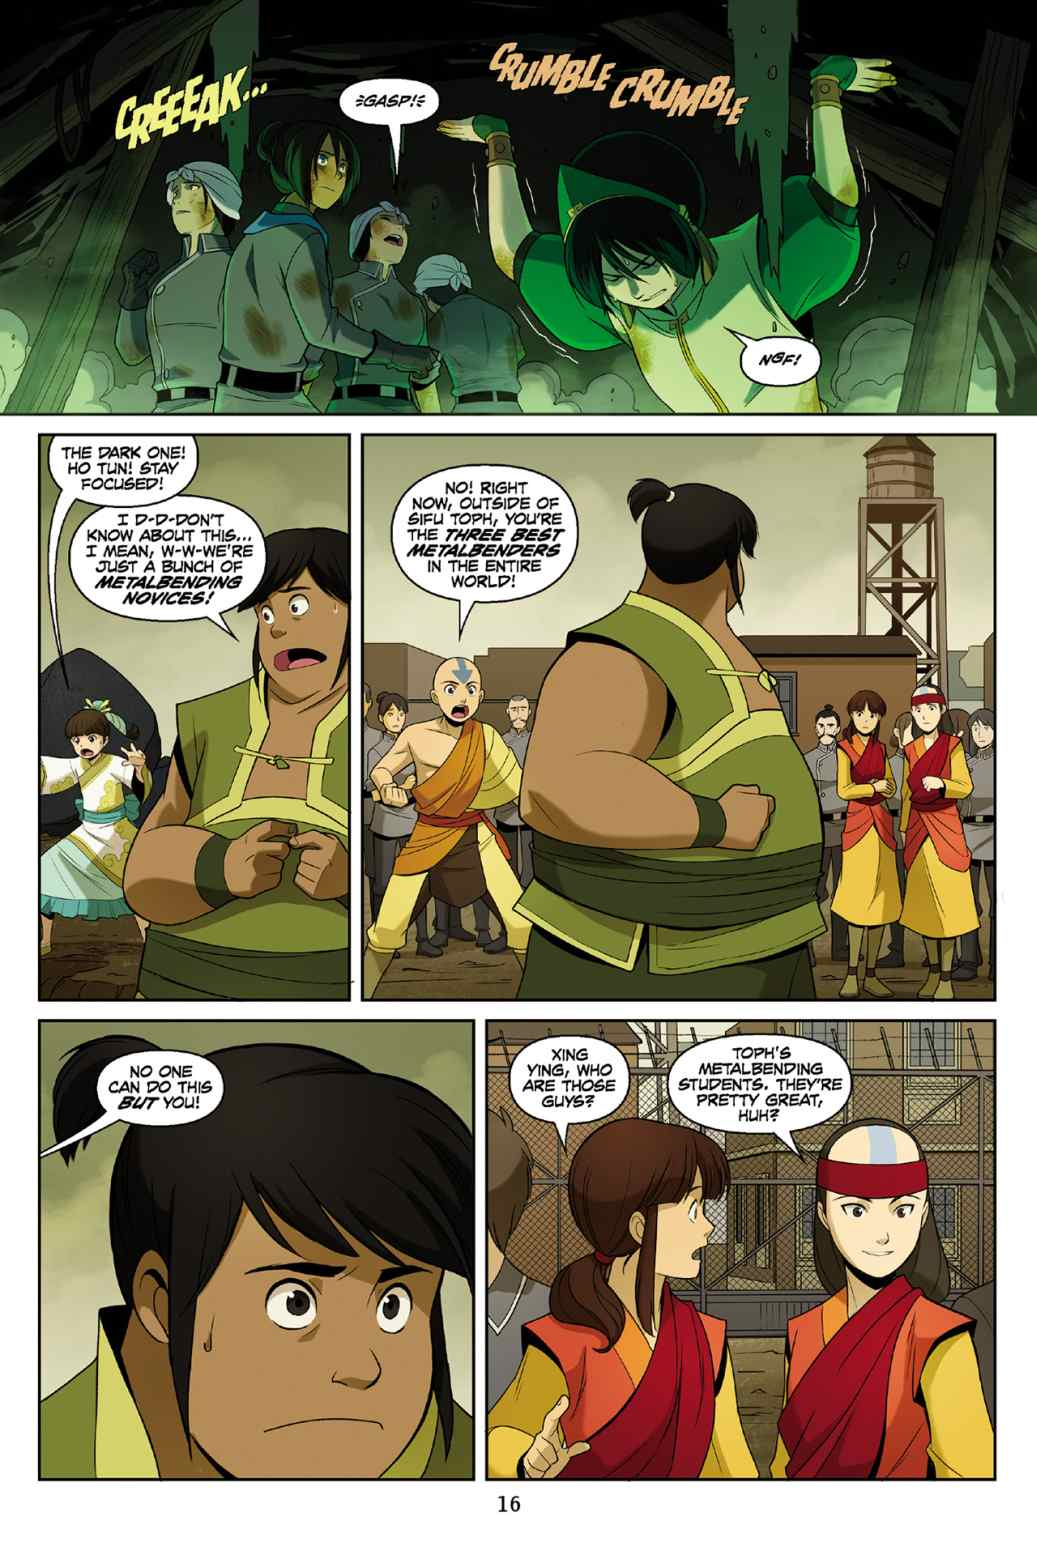 Read Comics Online Free - Avatar The Last Airbender - Chapter 009